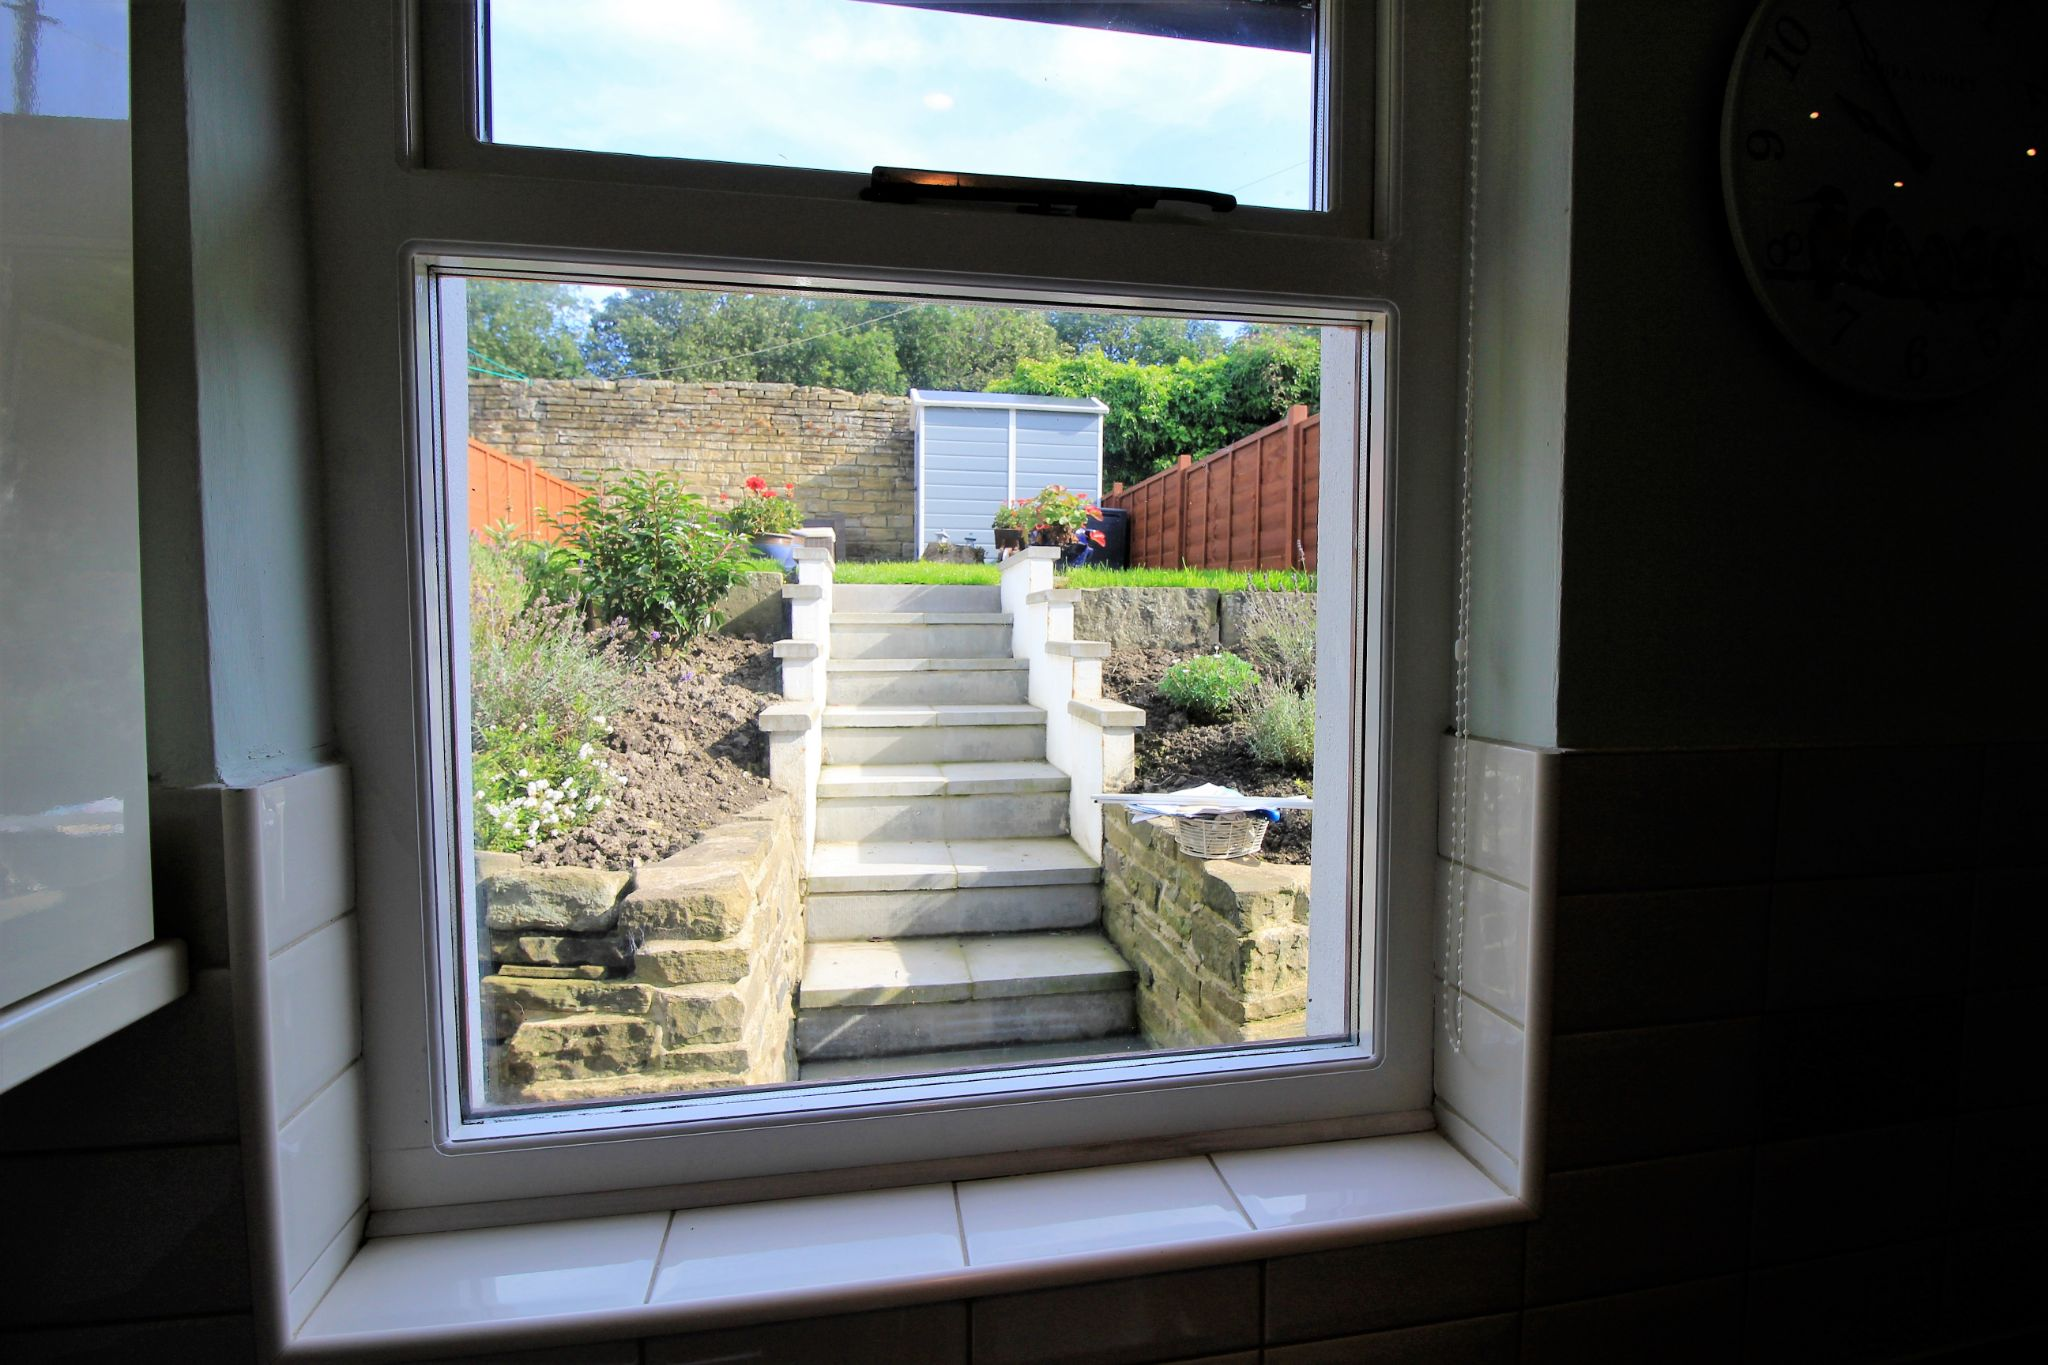 2 bedroom cottage house SSTC in Huddersfield - View from the kitchen window